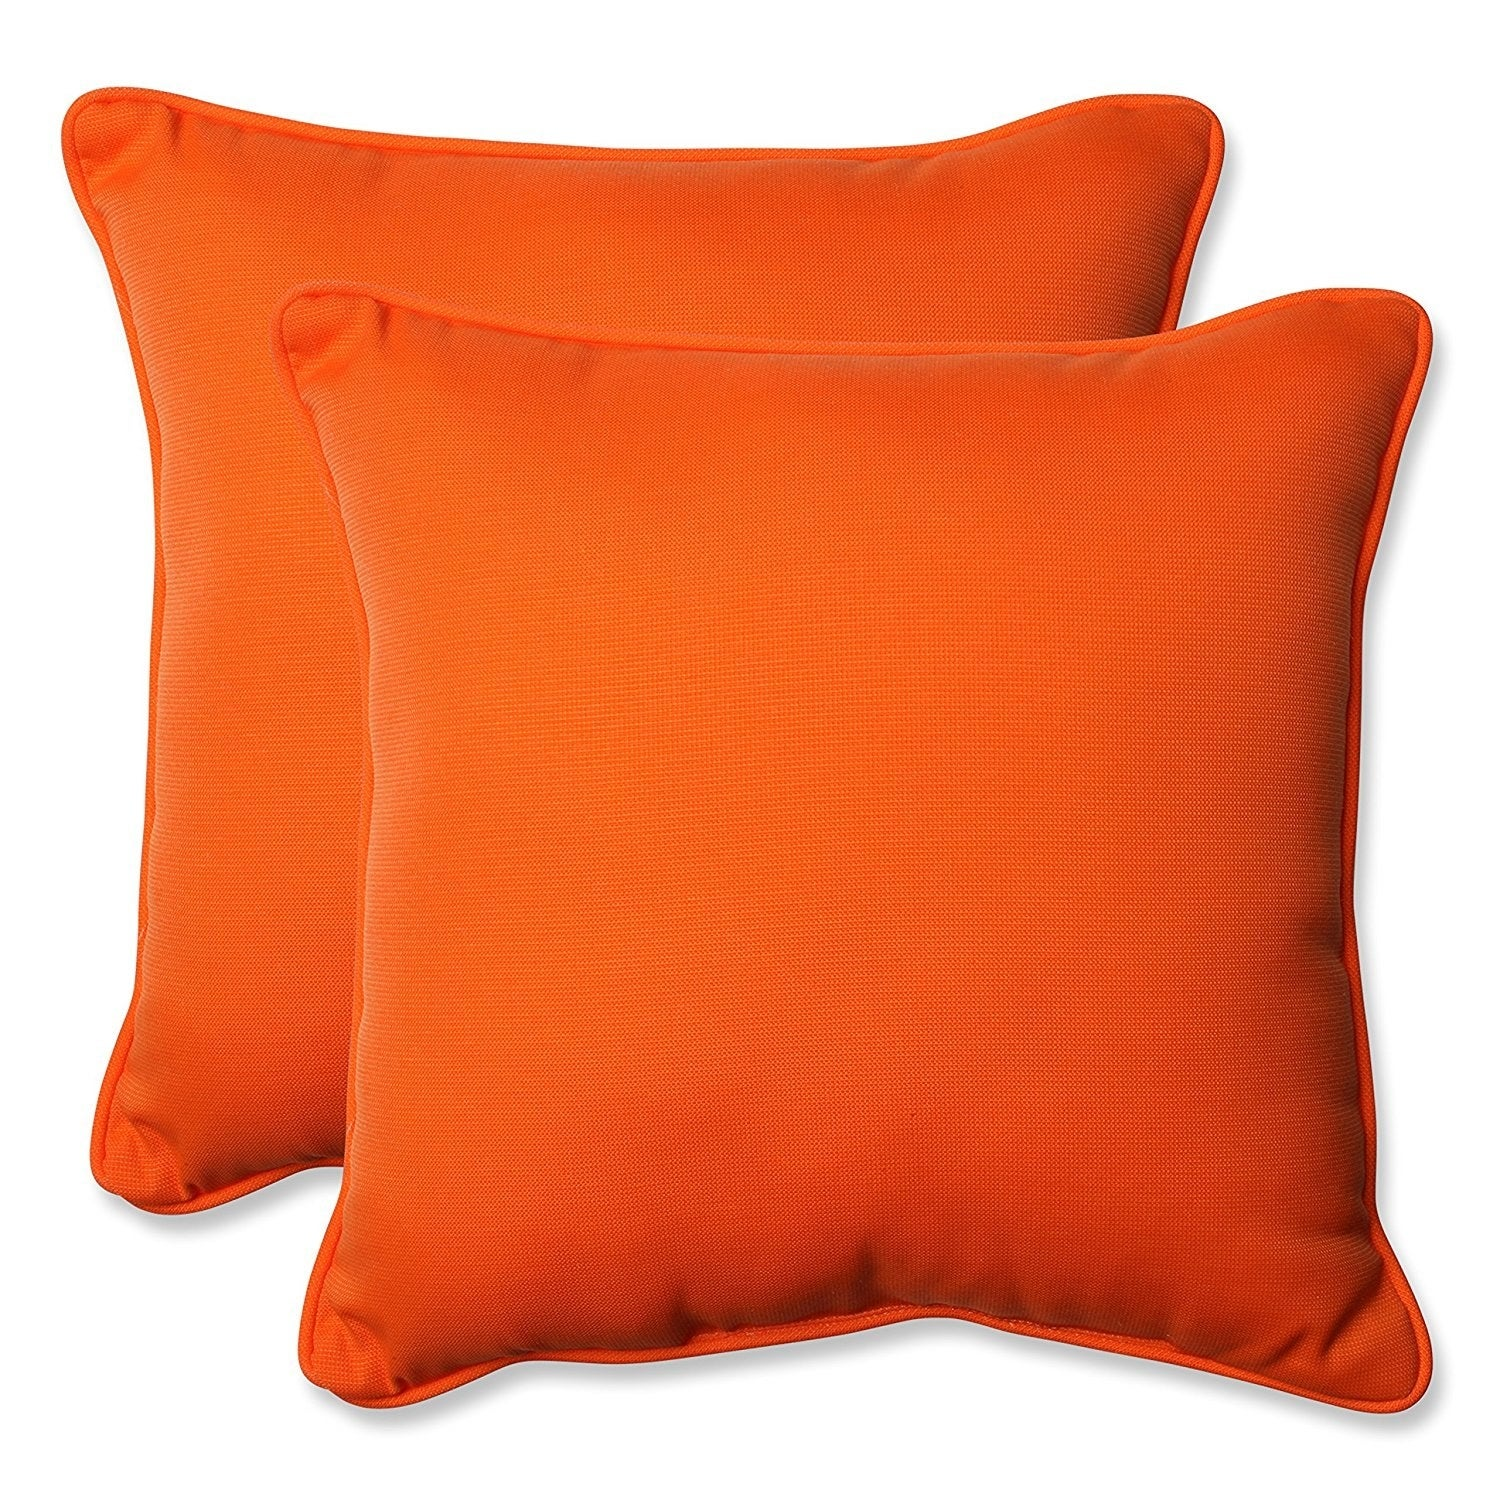 25 Of The Best Throw Pillows You Can Get On Amazon